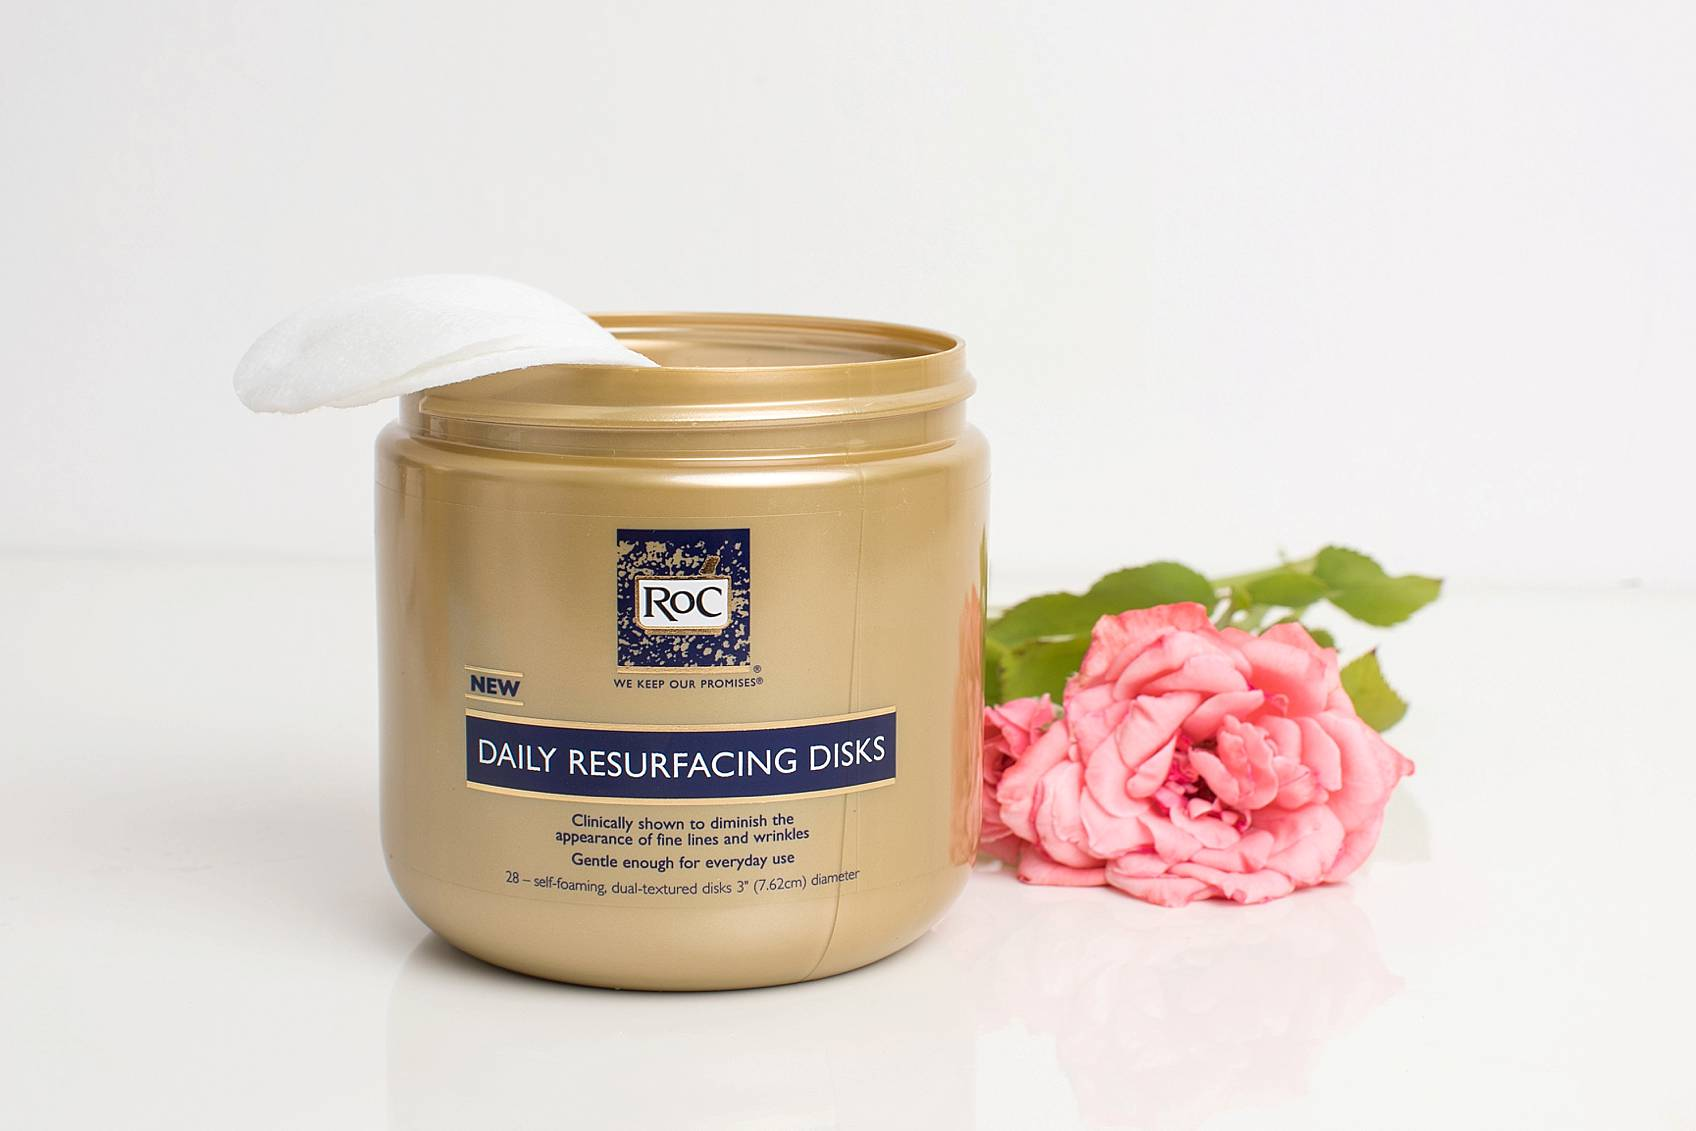 RoC products anti aging drugstore retinol products on display with pink rose facial discs